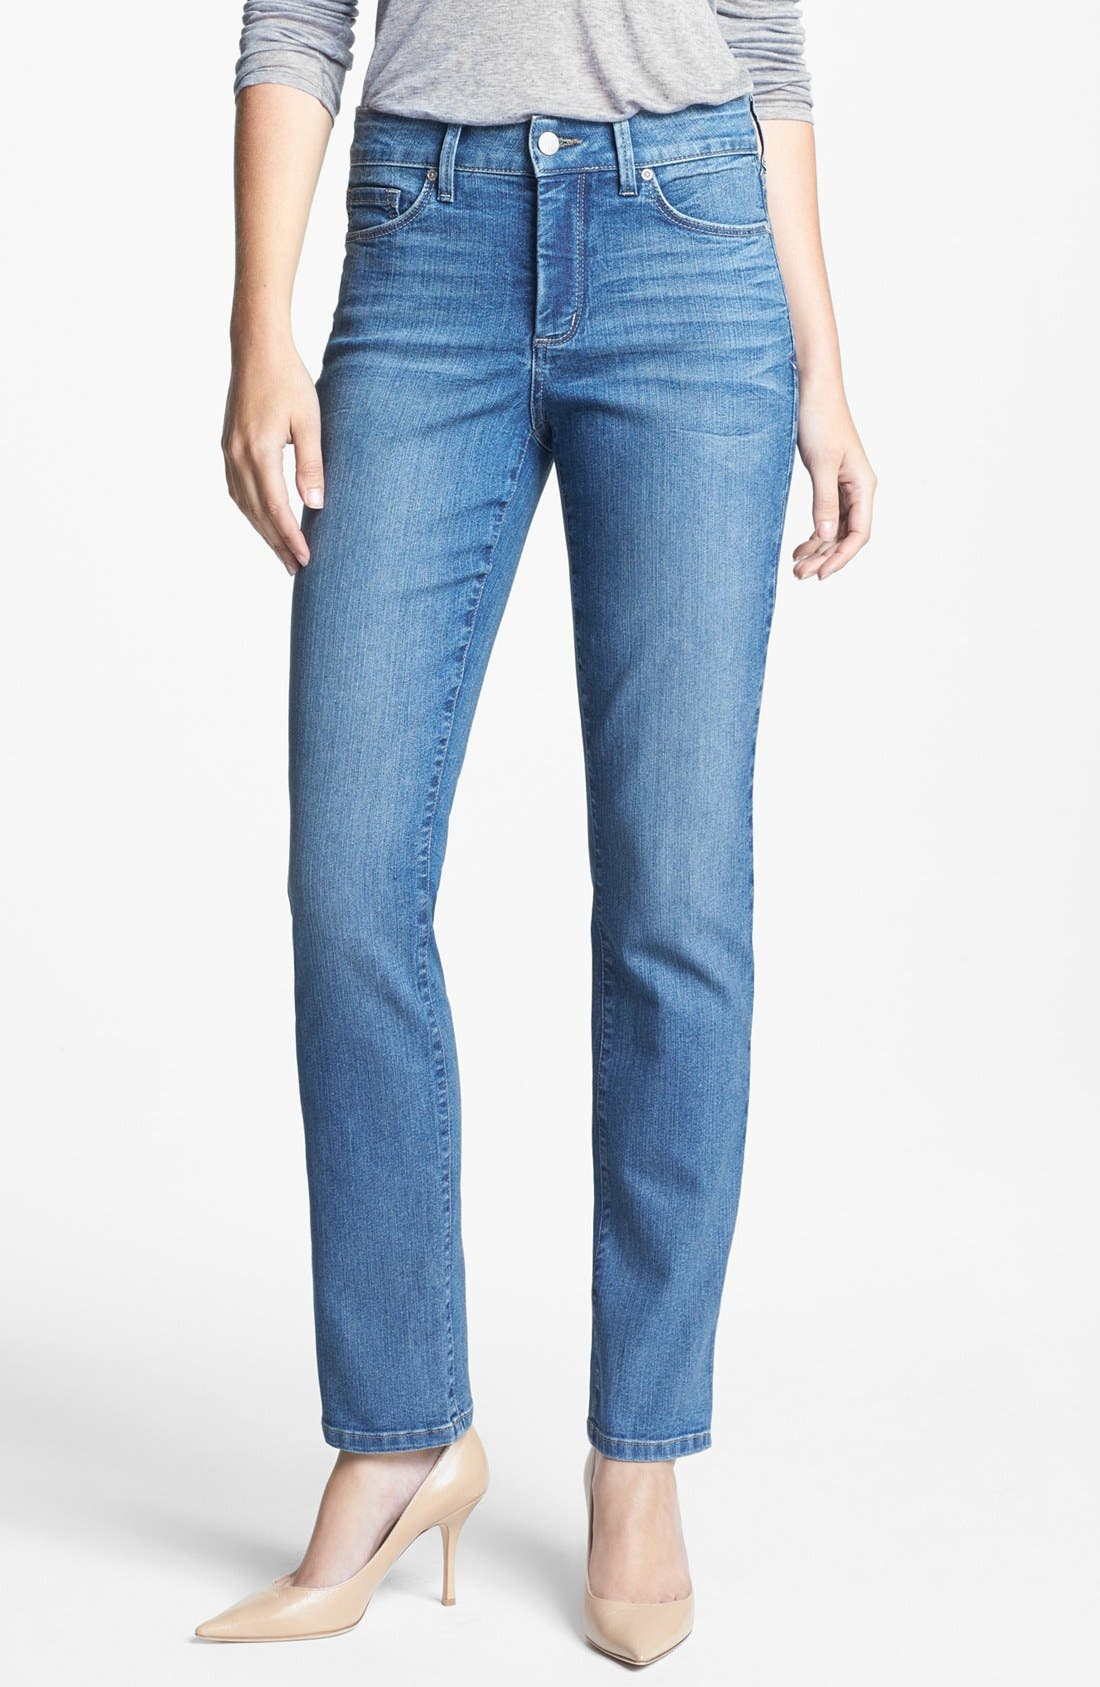 Alternate Image 1 Selected - NYDJ 'Sheri' Stretch Skinny Jeans (Ontario) (Petite)